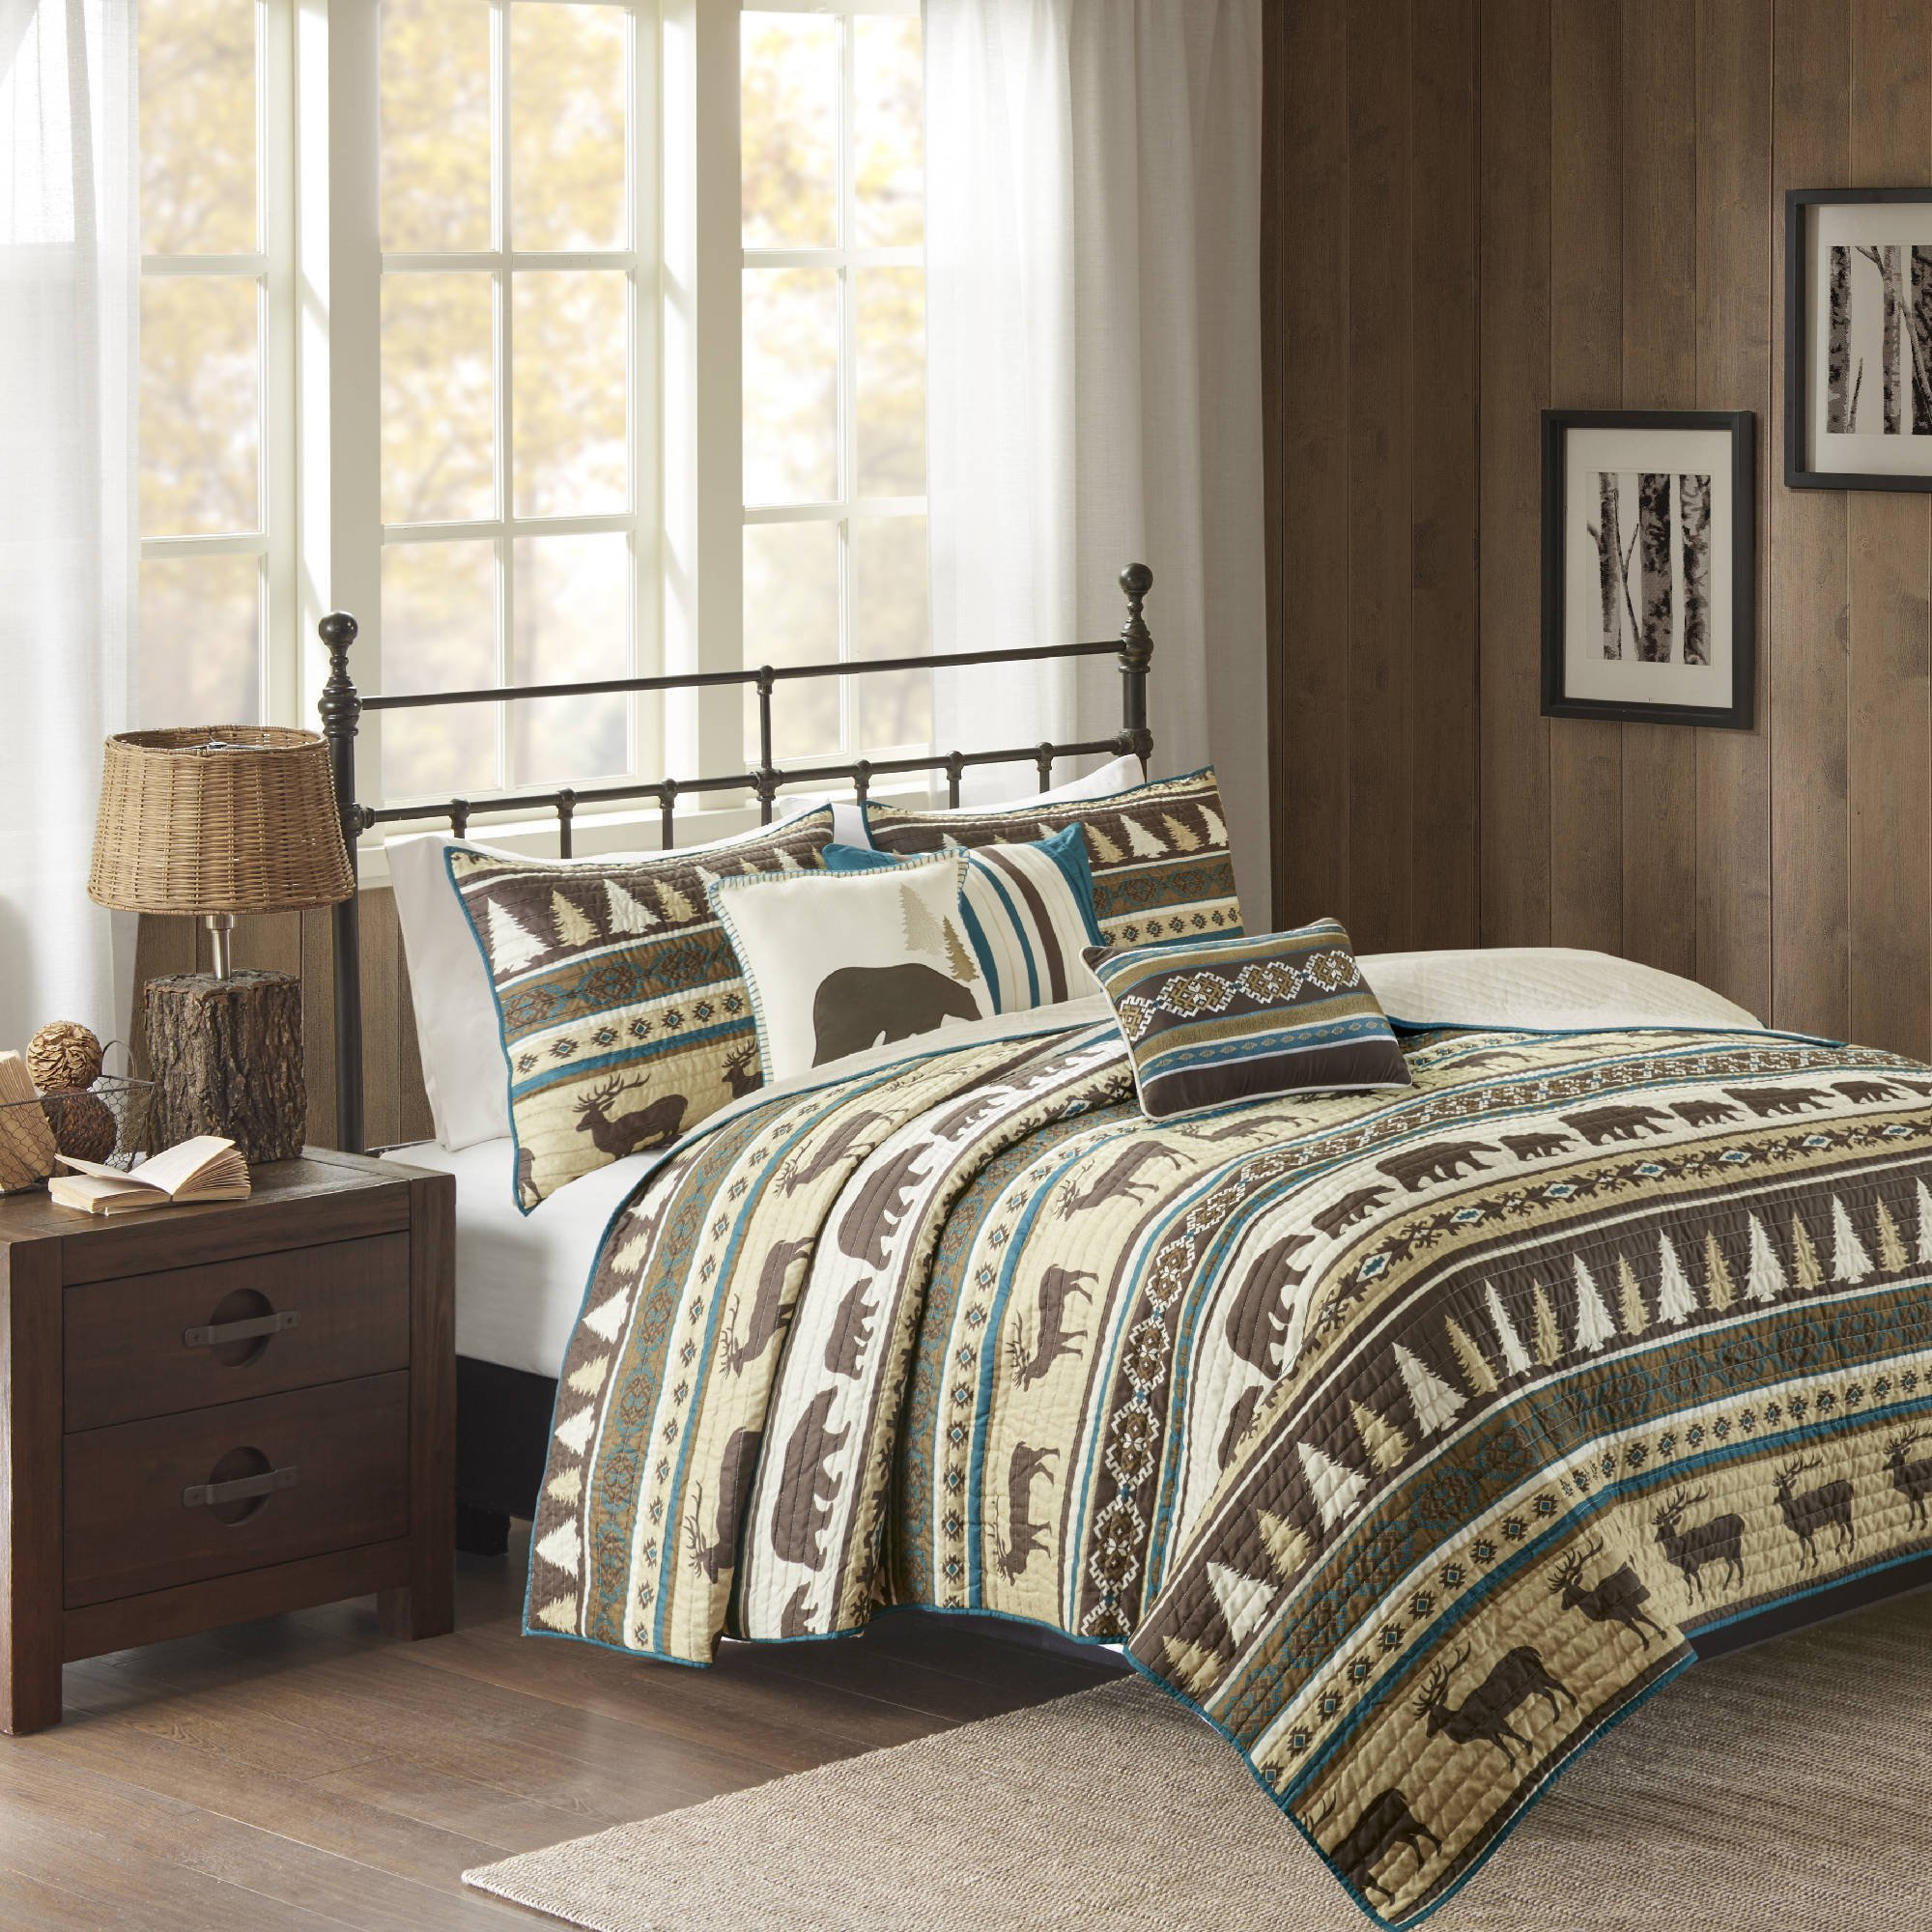 6 Piece Brown White Stripe King/Cal King Coverlet Set, Lodge Animal Print Themed Bedding, Cabin Country Tartan Pattern Cottage Woods Bears Deer Pine Trees Horizontal Diamond Patterns,Polyester